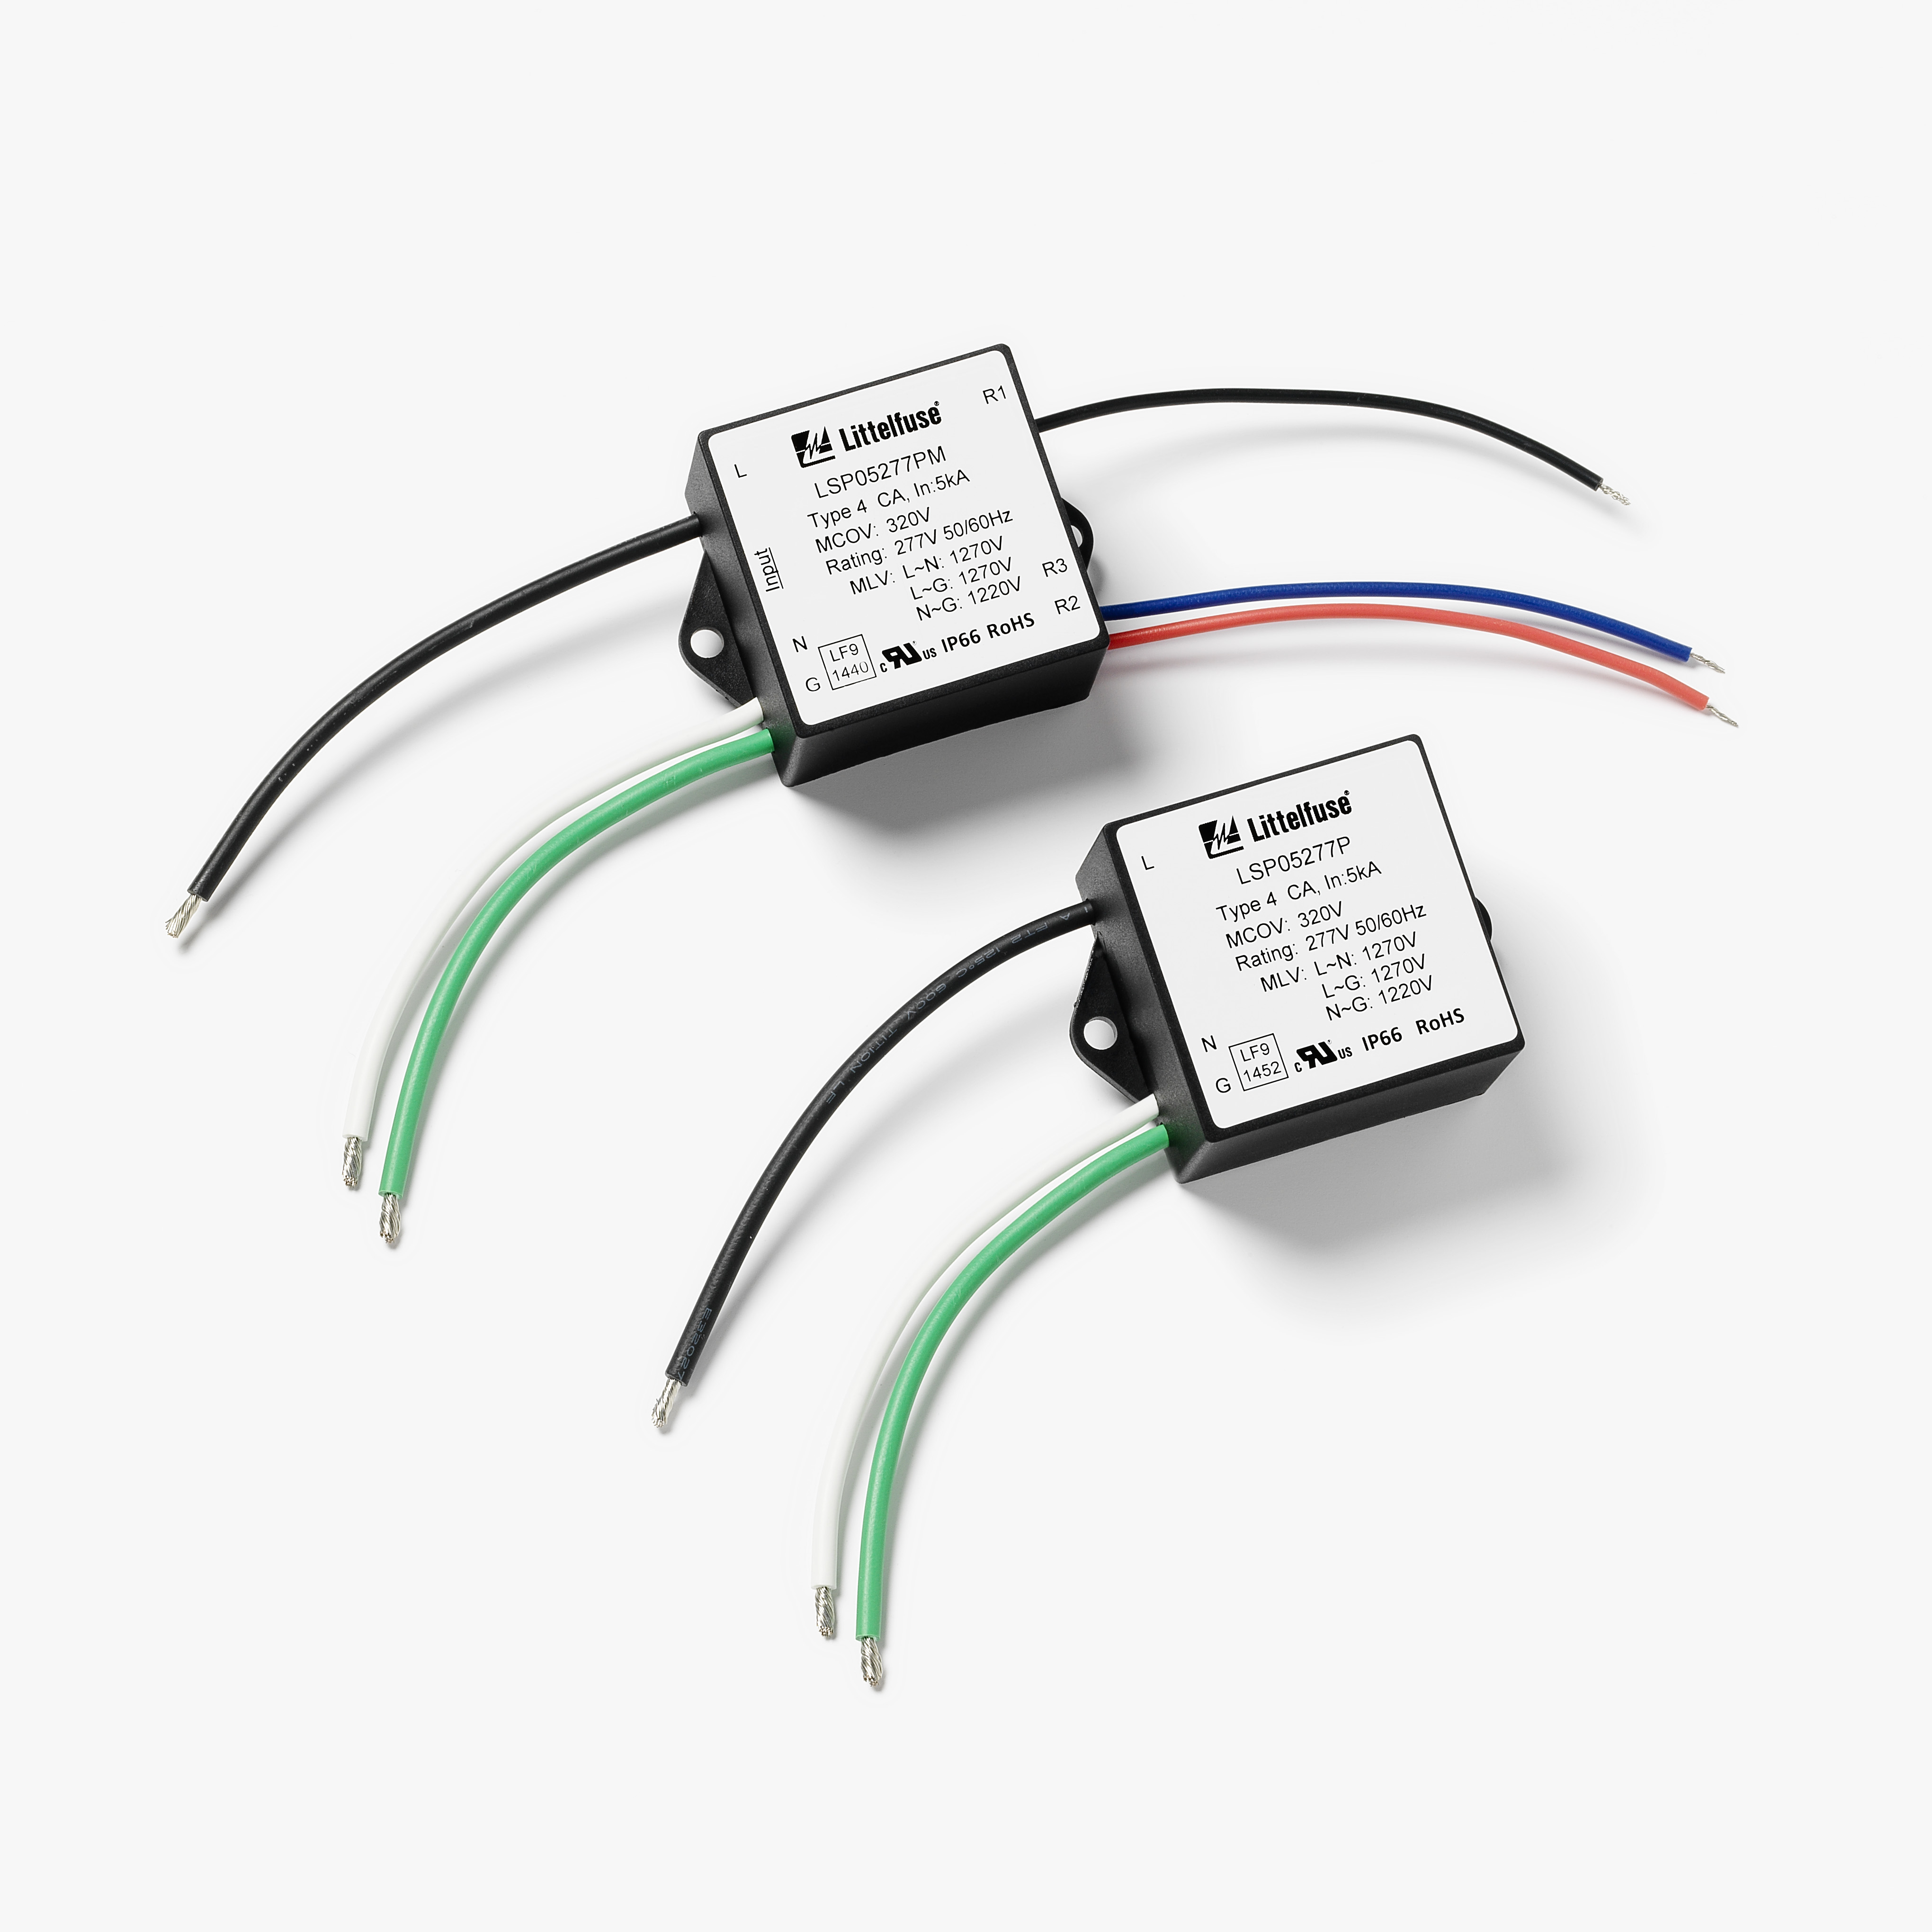 Commercial Lightning Protection: New Surge Protection Modules From Littelfuse Include World